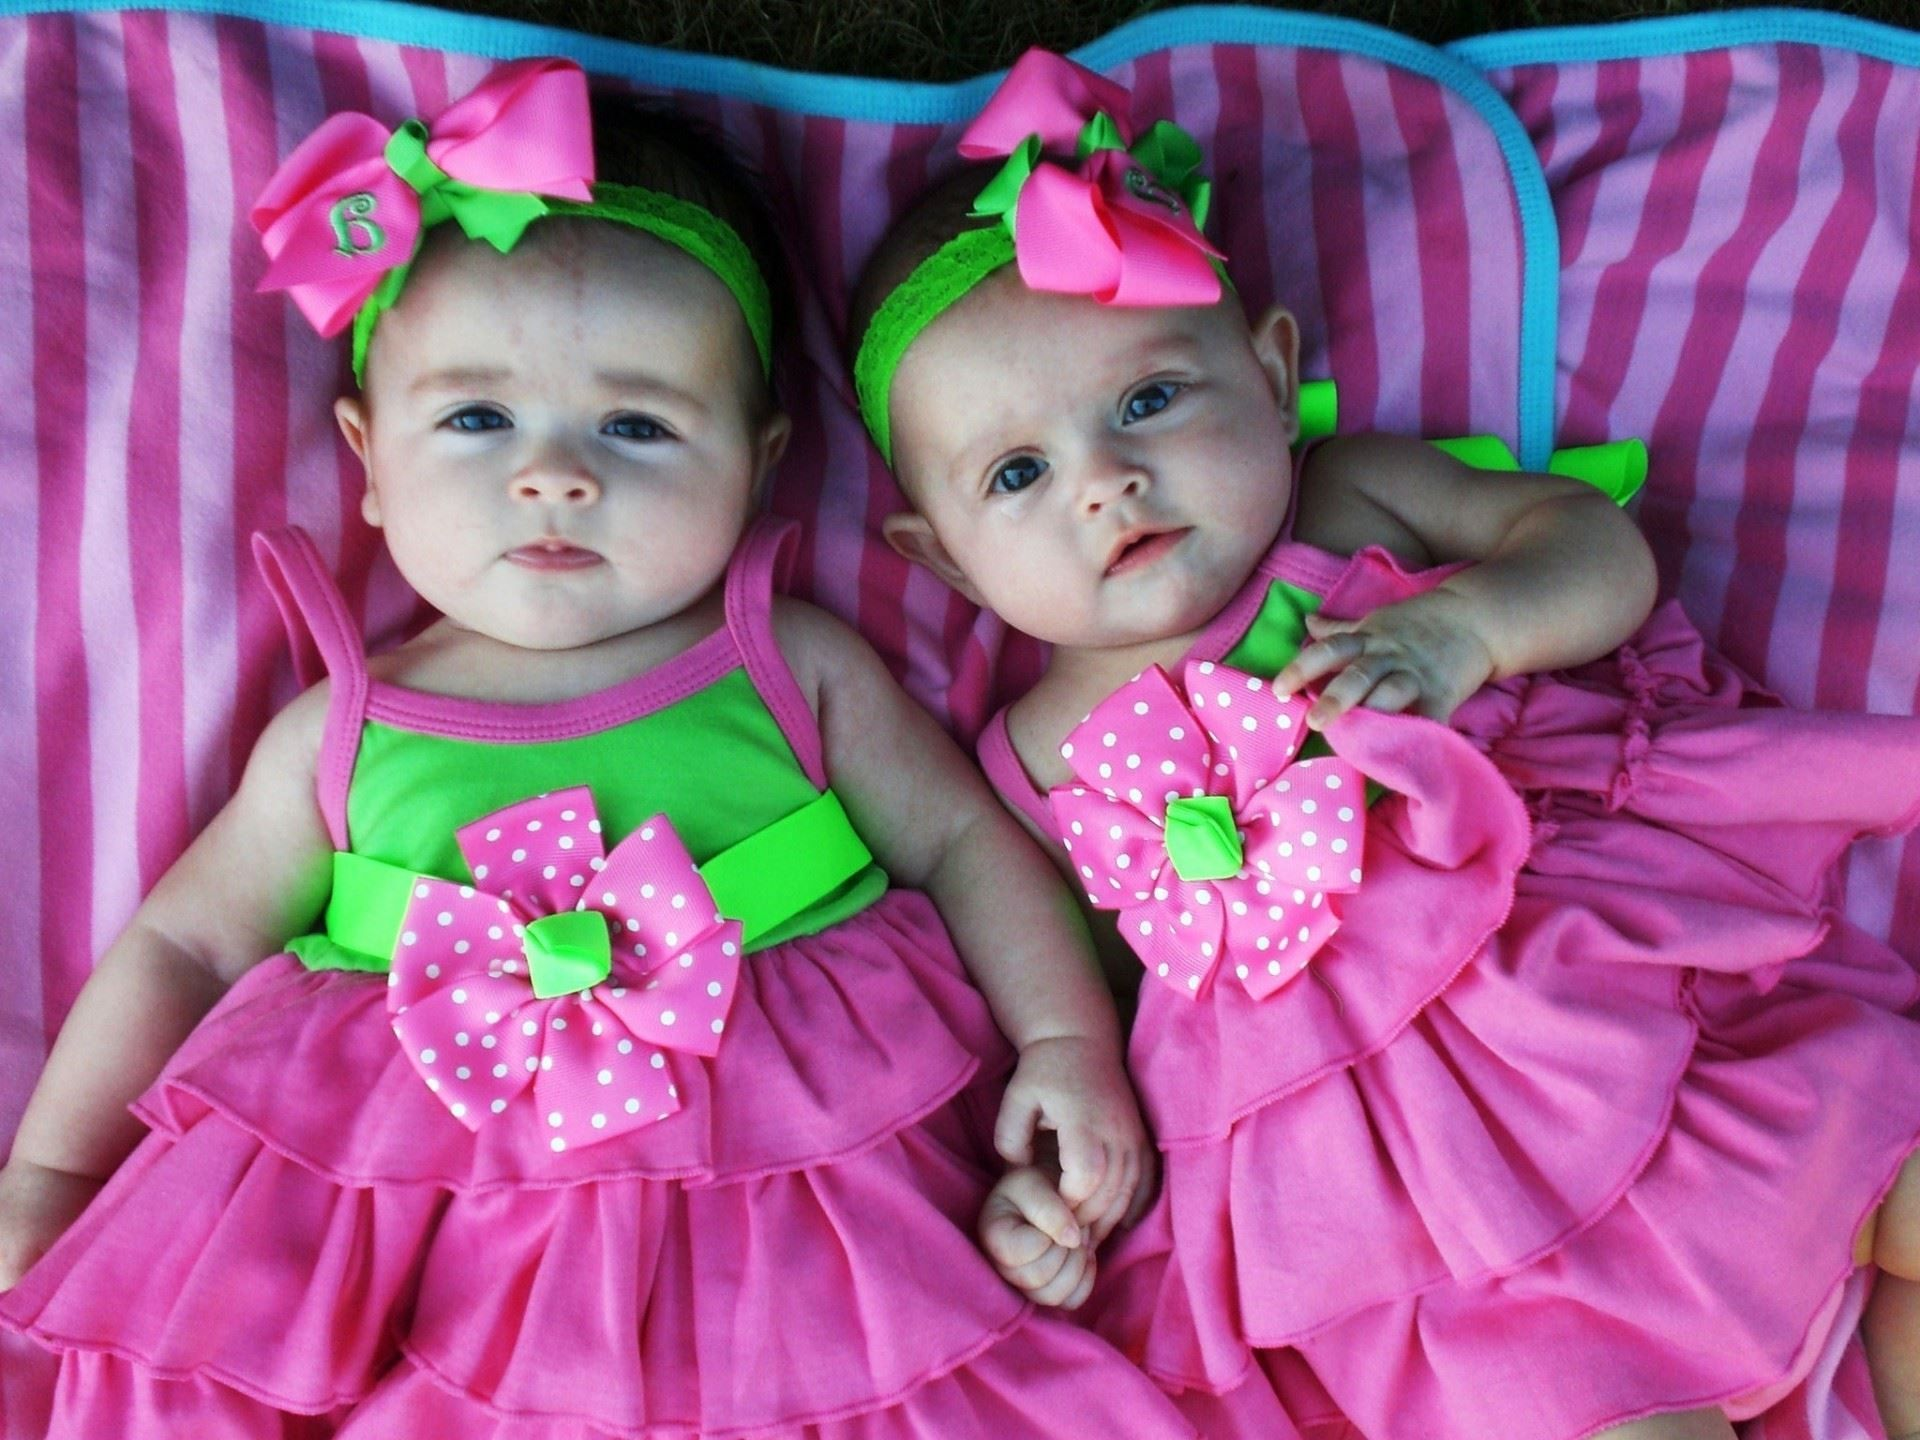 cute twins babies wallpapers images HD Wallpapers Buzz 1284722 1920x1440